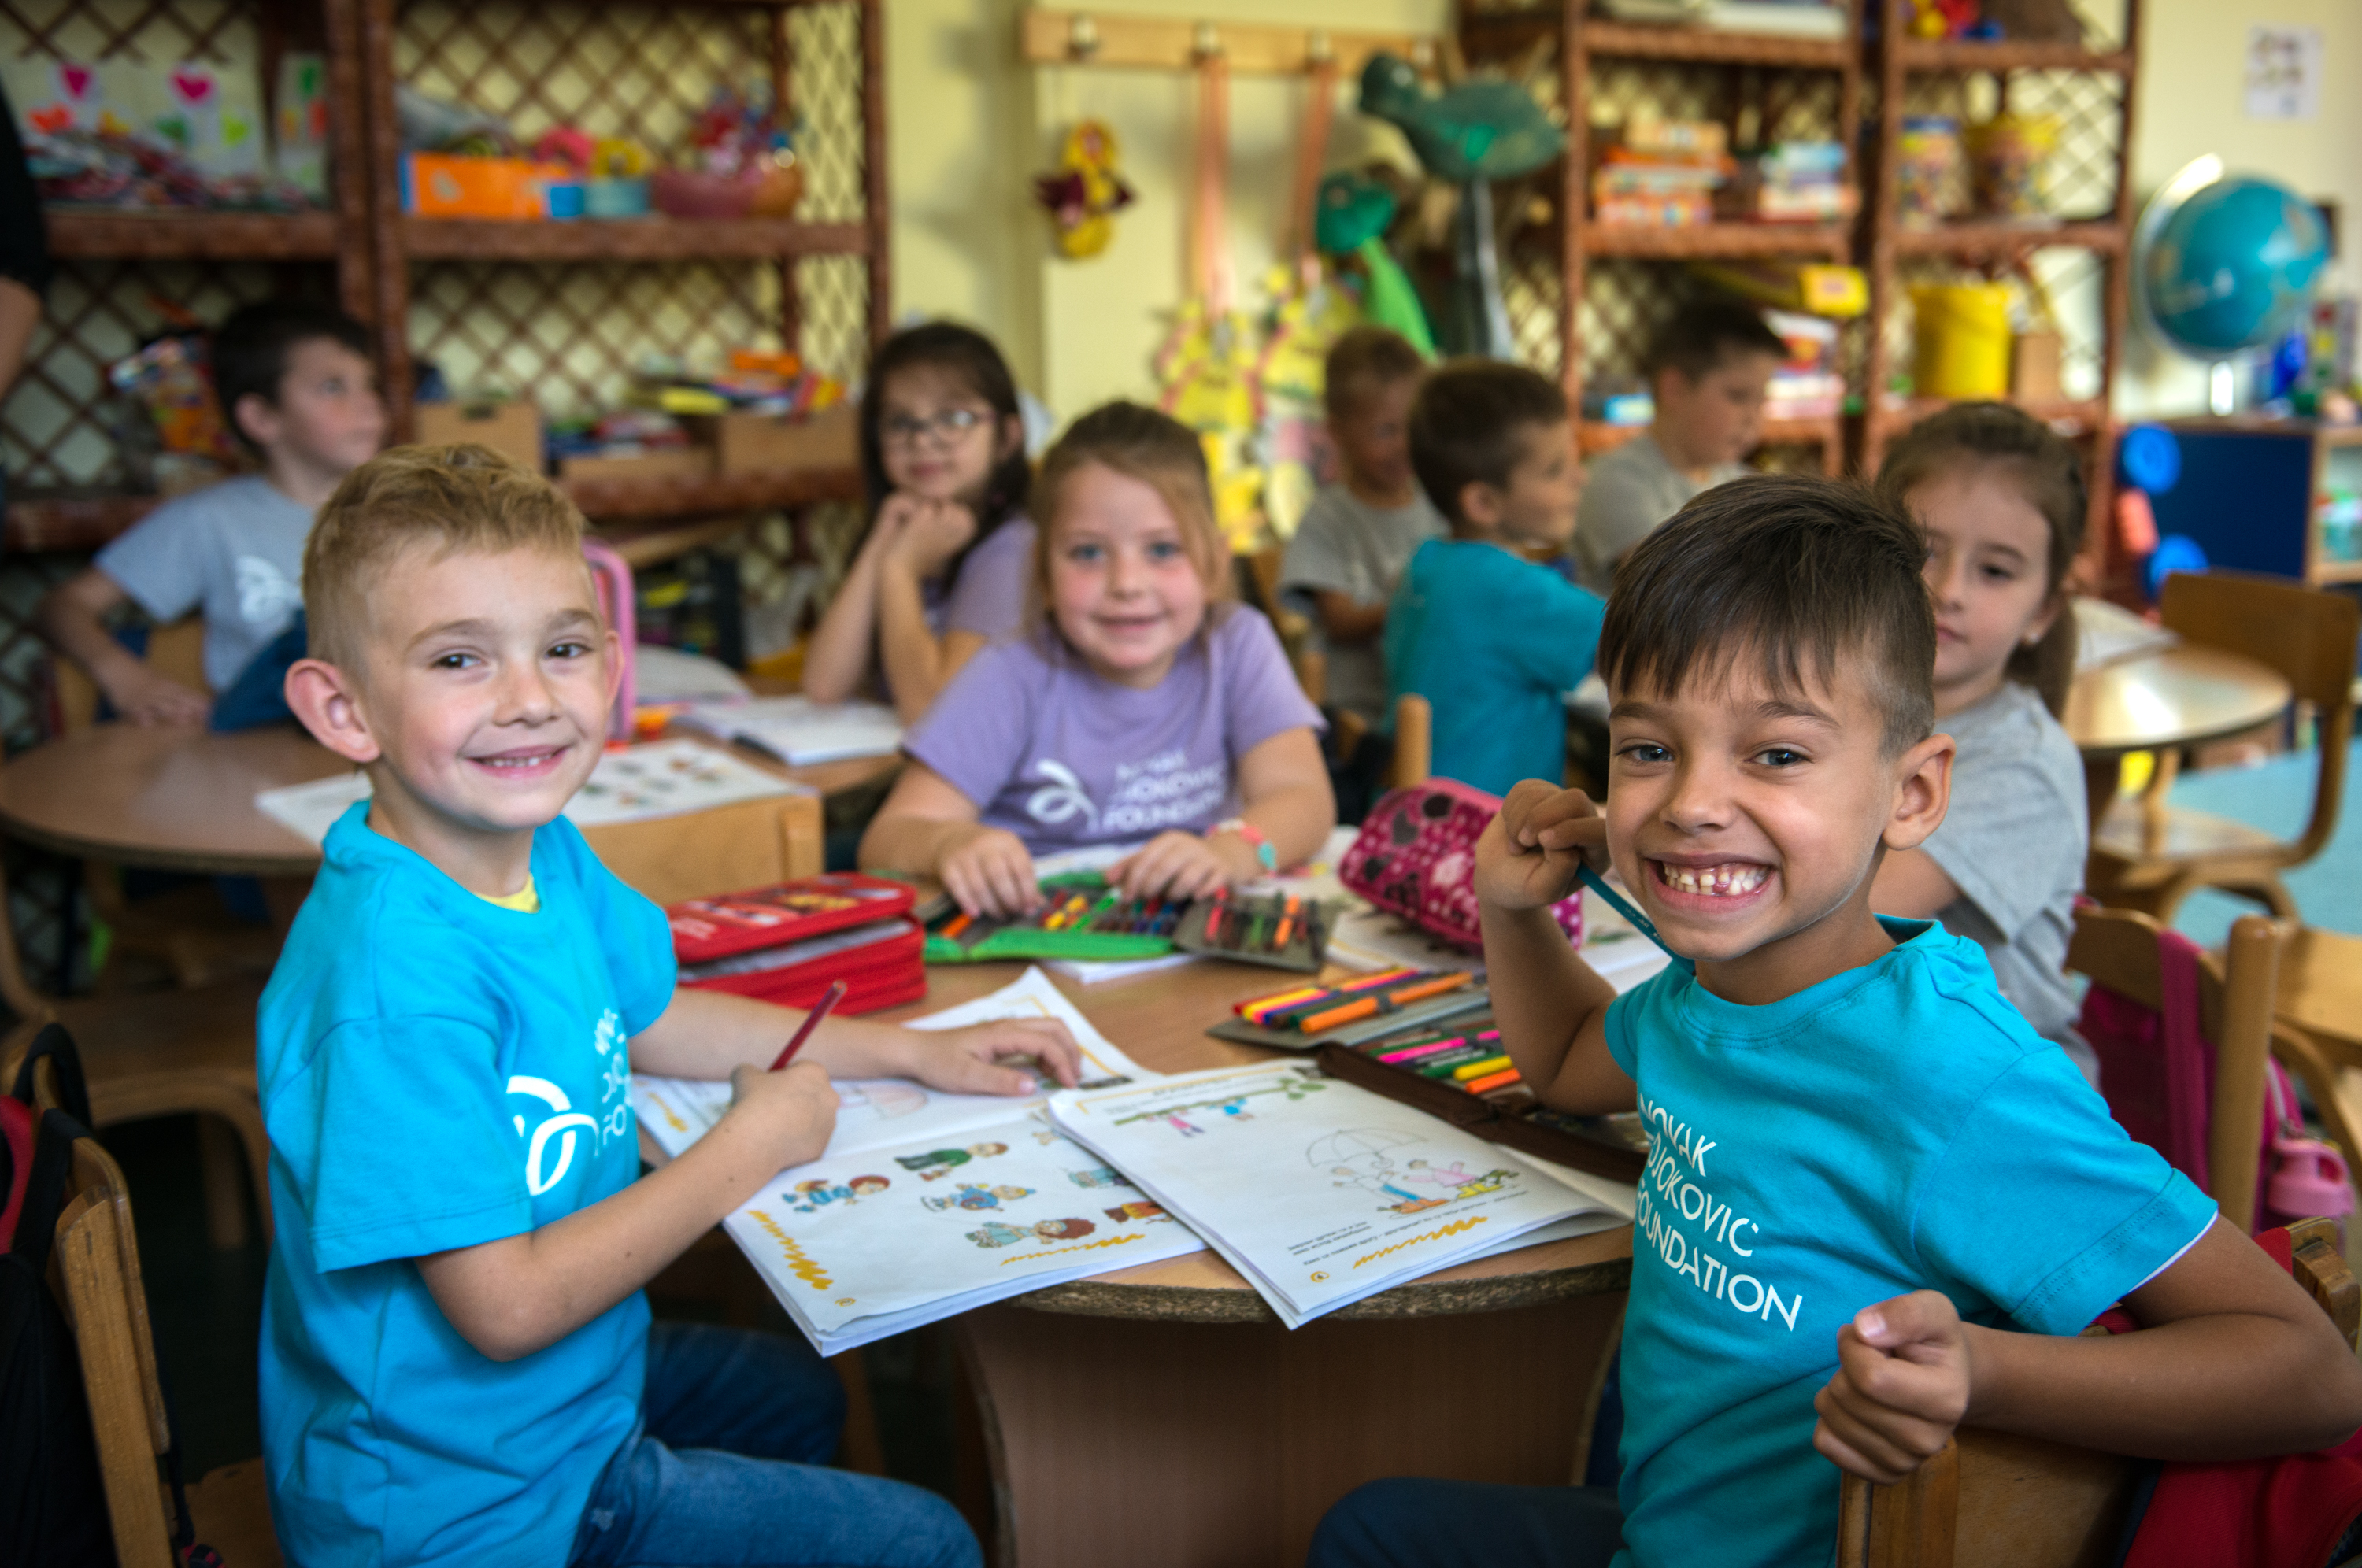 The founders of the Foundation, Novak and Jelena Djokovic, inspired by the gestures of all who joined the campaign, decided to double the raised amount of USD 140.000 with their personal funds, which means that almost USD 280.000 will be invested in the opening of new preschools in Serbia.